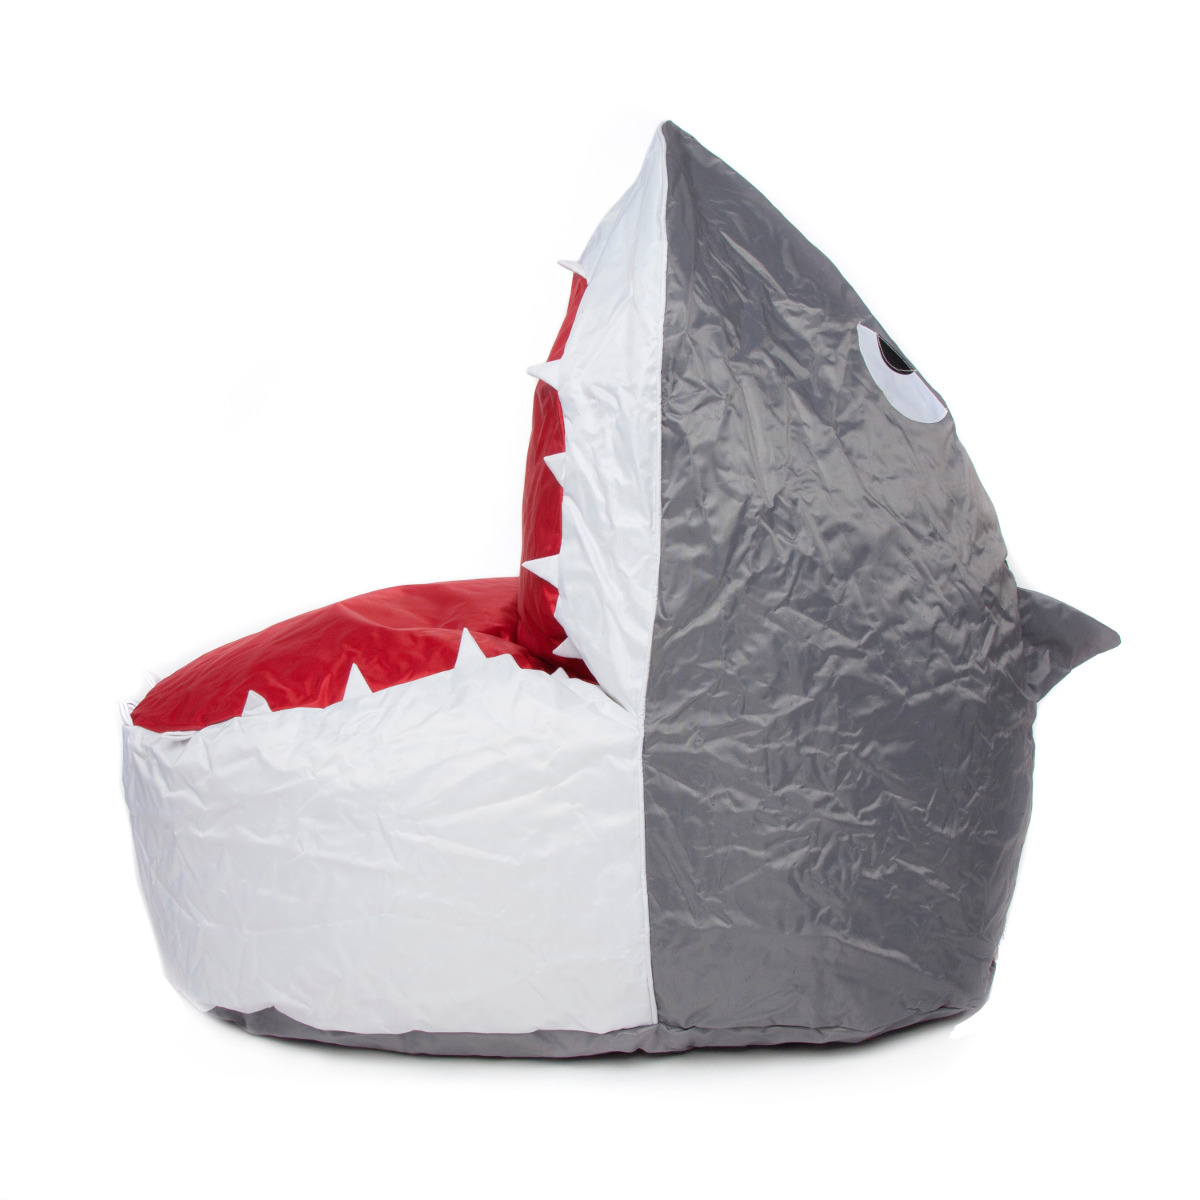 Pleasing Great Linen Offers From Uklinensdirect Com Shark Bean Bag Unemploymentrelief Wooden Chair Designs For Living Room Unemploymentrelieforg